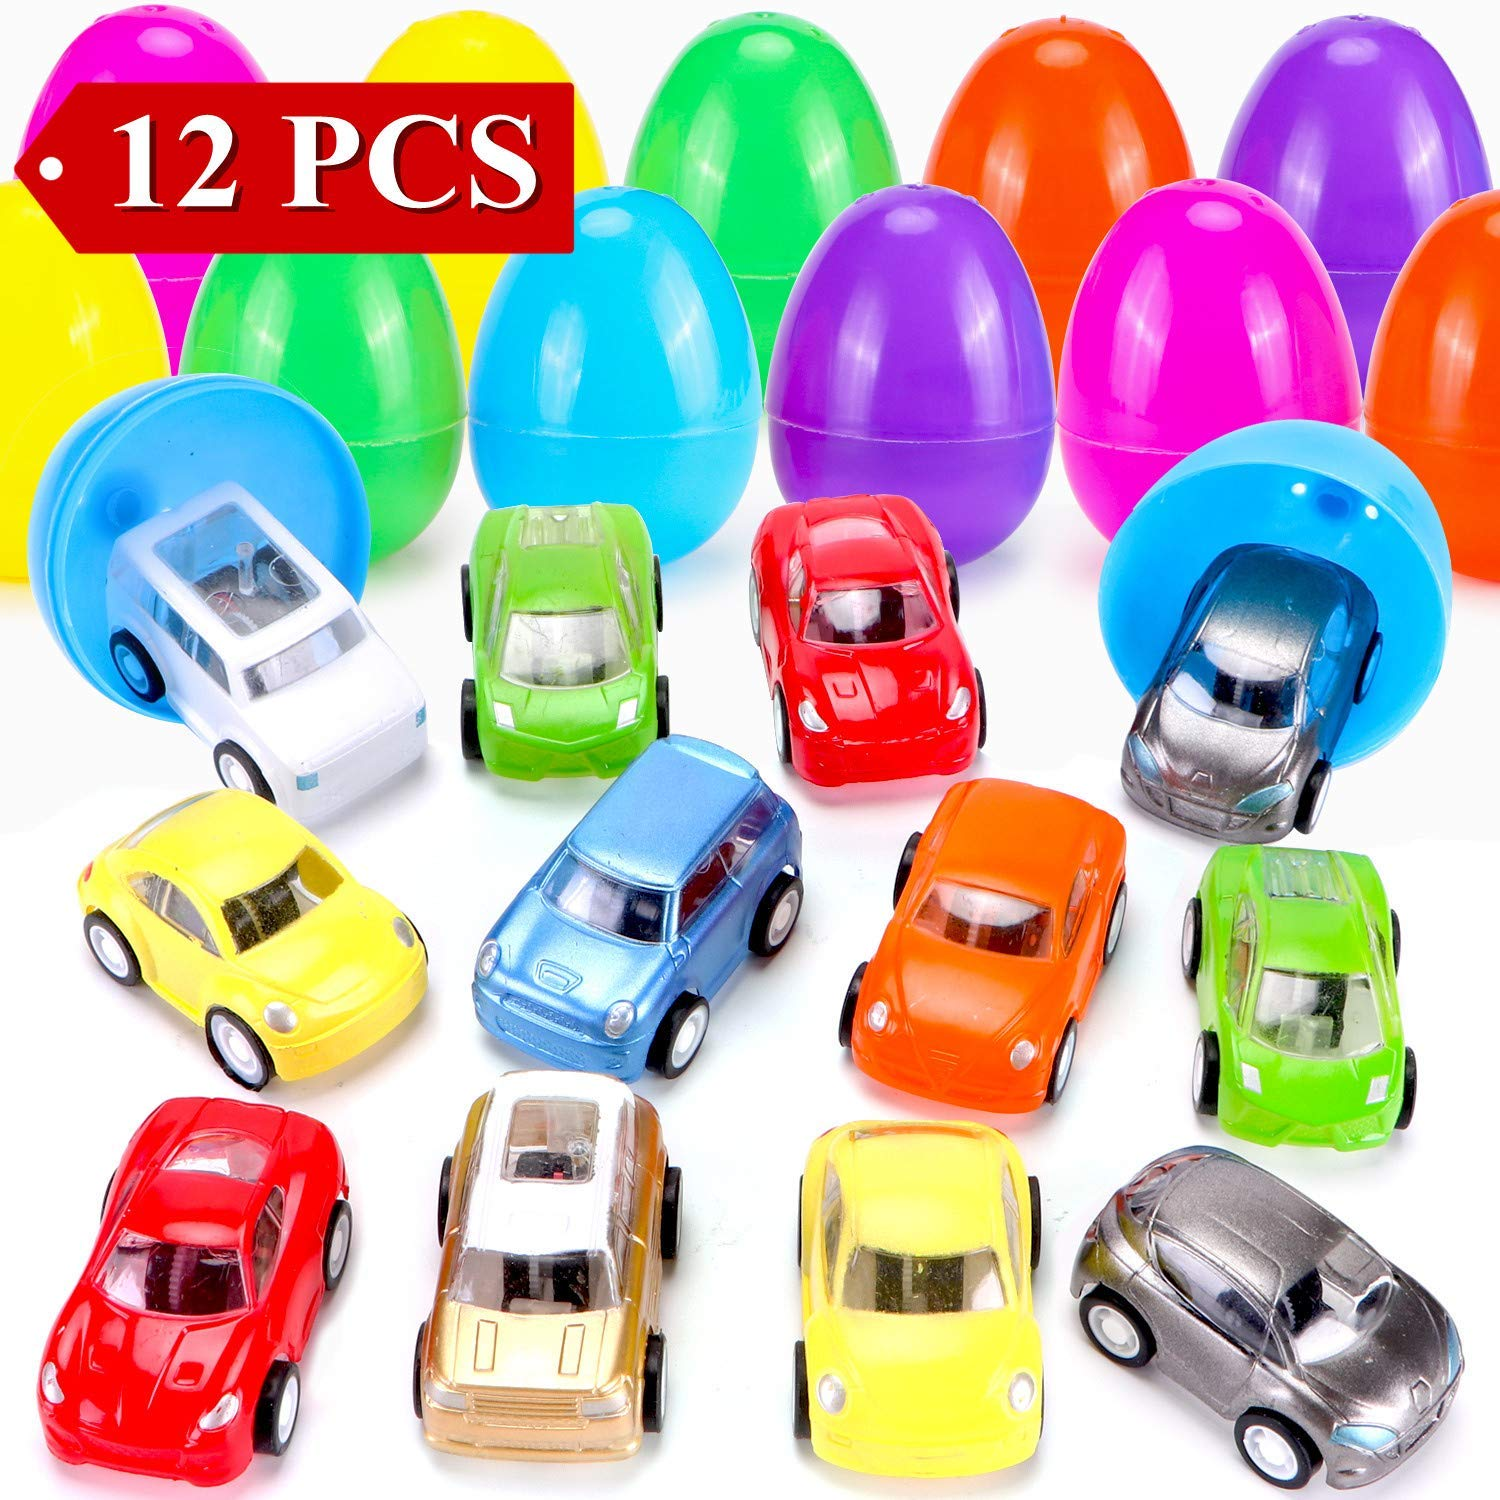 12 Pieces Easter Eggs Filled with Mini Toys - Perfect As Party Favors, Easter Egg Hunt Supplies - Different Plush Toy Filled 3.15'' DIY Colorful plastic eggs by Sizonjoy (Image #1)